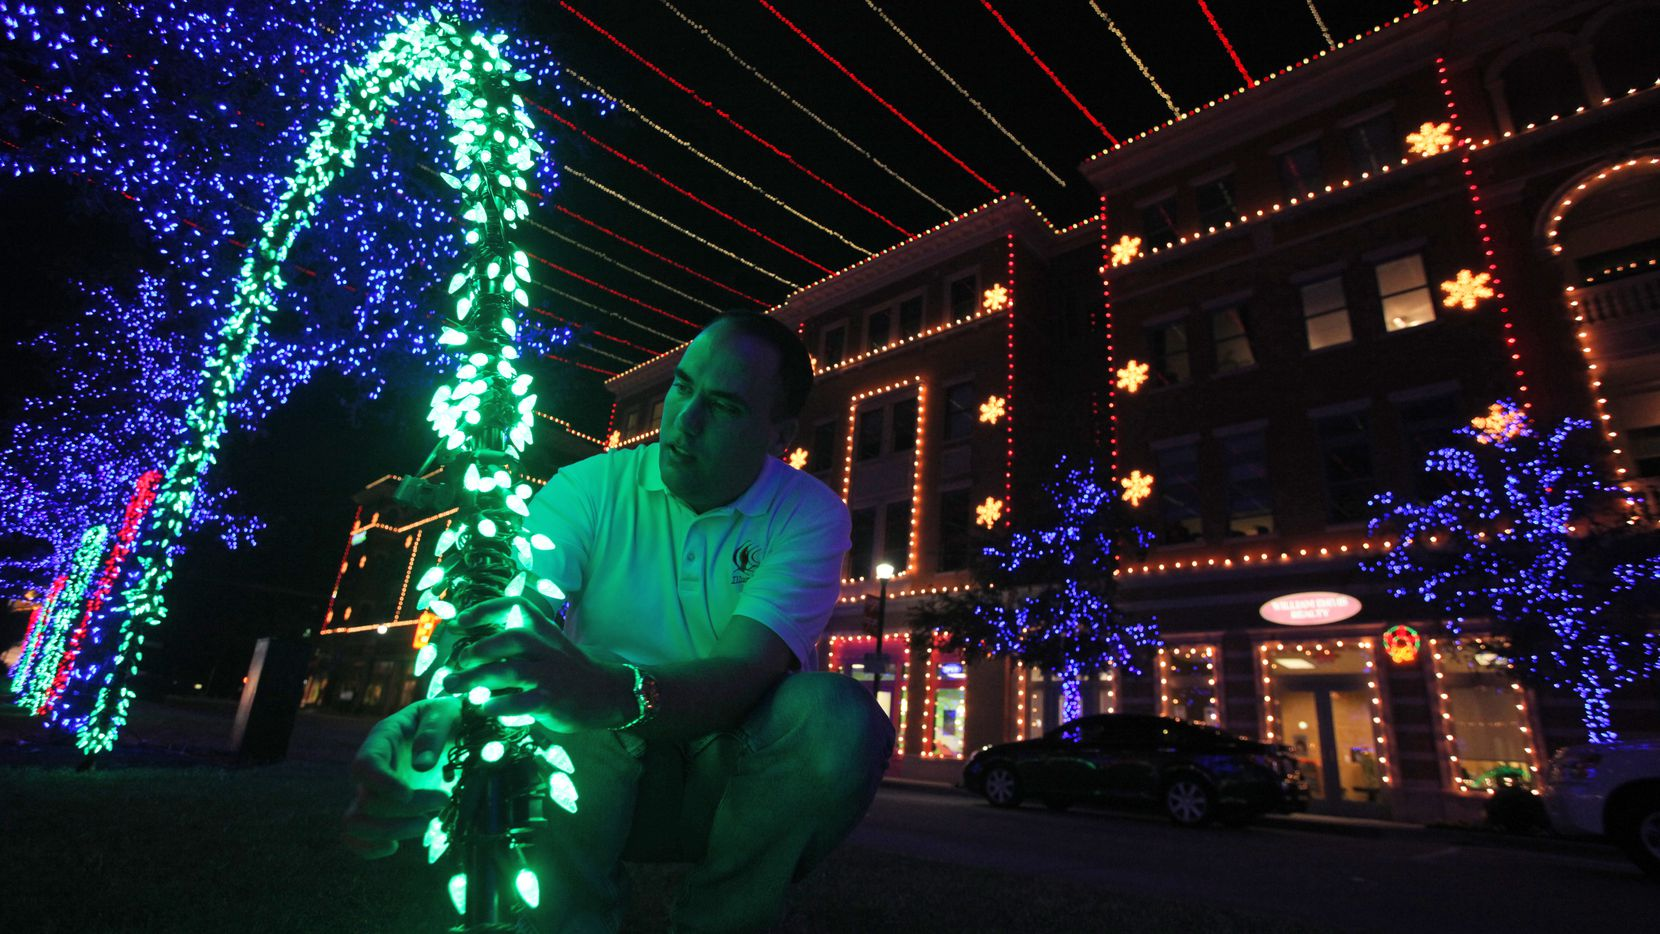 One week out before Frisco's Square light show, Jeff Trykoski checks placement of LED lights at  Frisco Square  November 21, 2010. Trykoski is the man behind the holiday light show set to music that runs in Frisco Square each year.